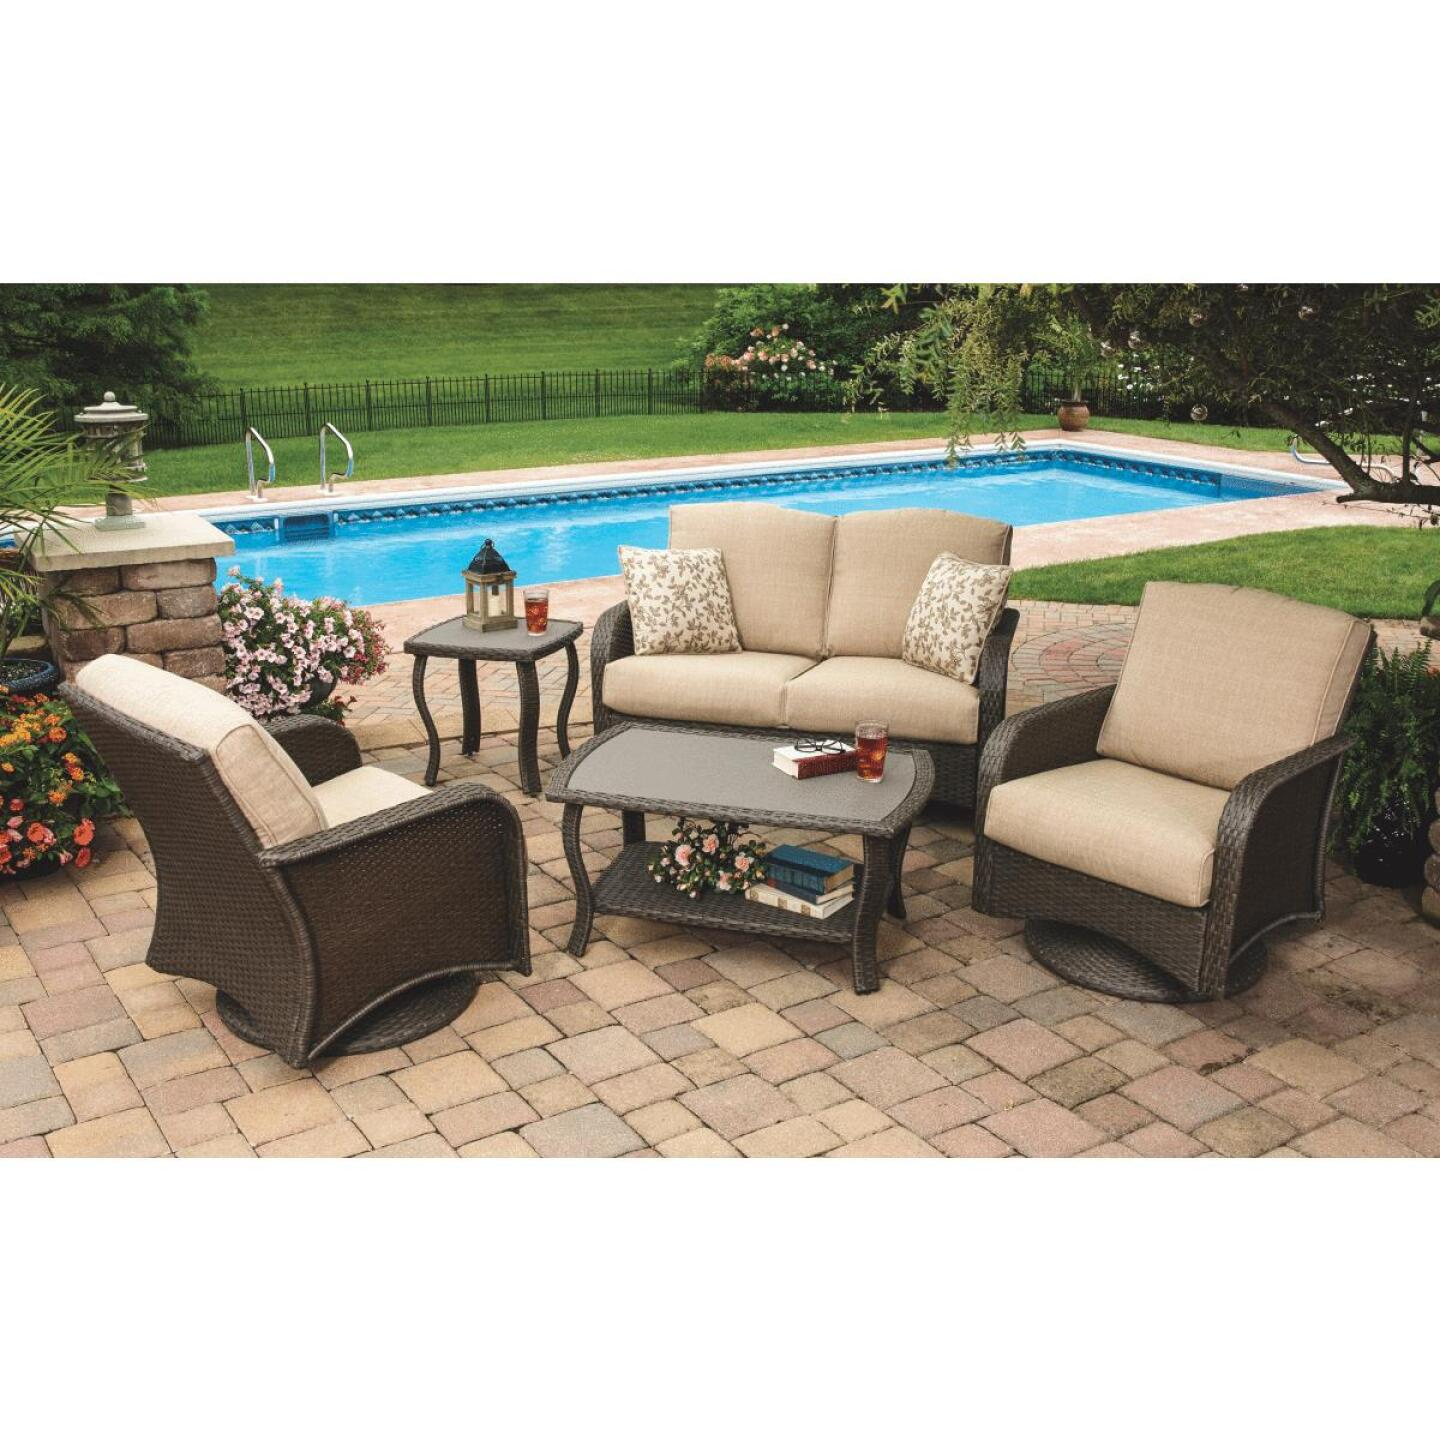 Pacific Casual Tiara Garden 2-Person Love Seat with Coffee Table Image 10